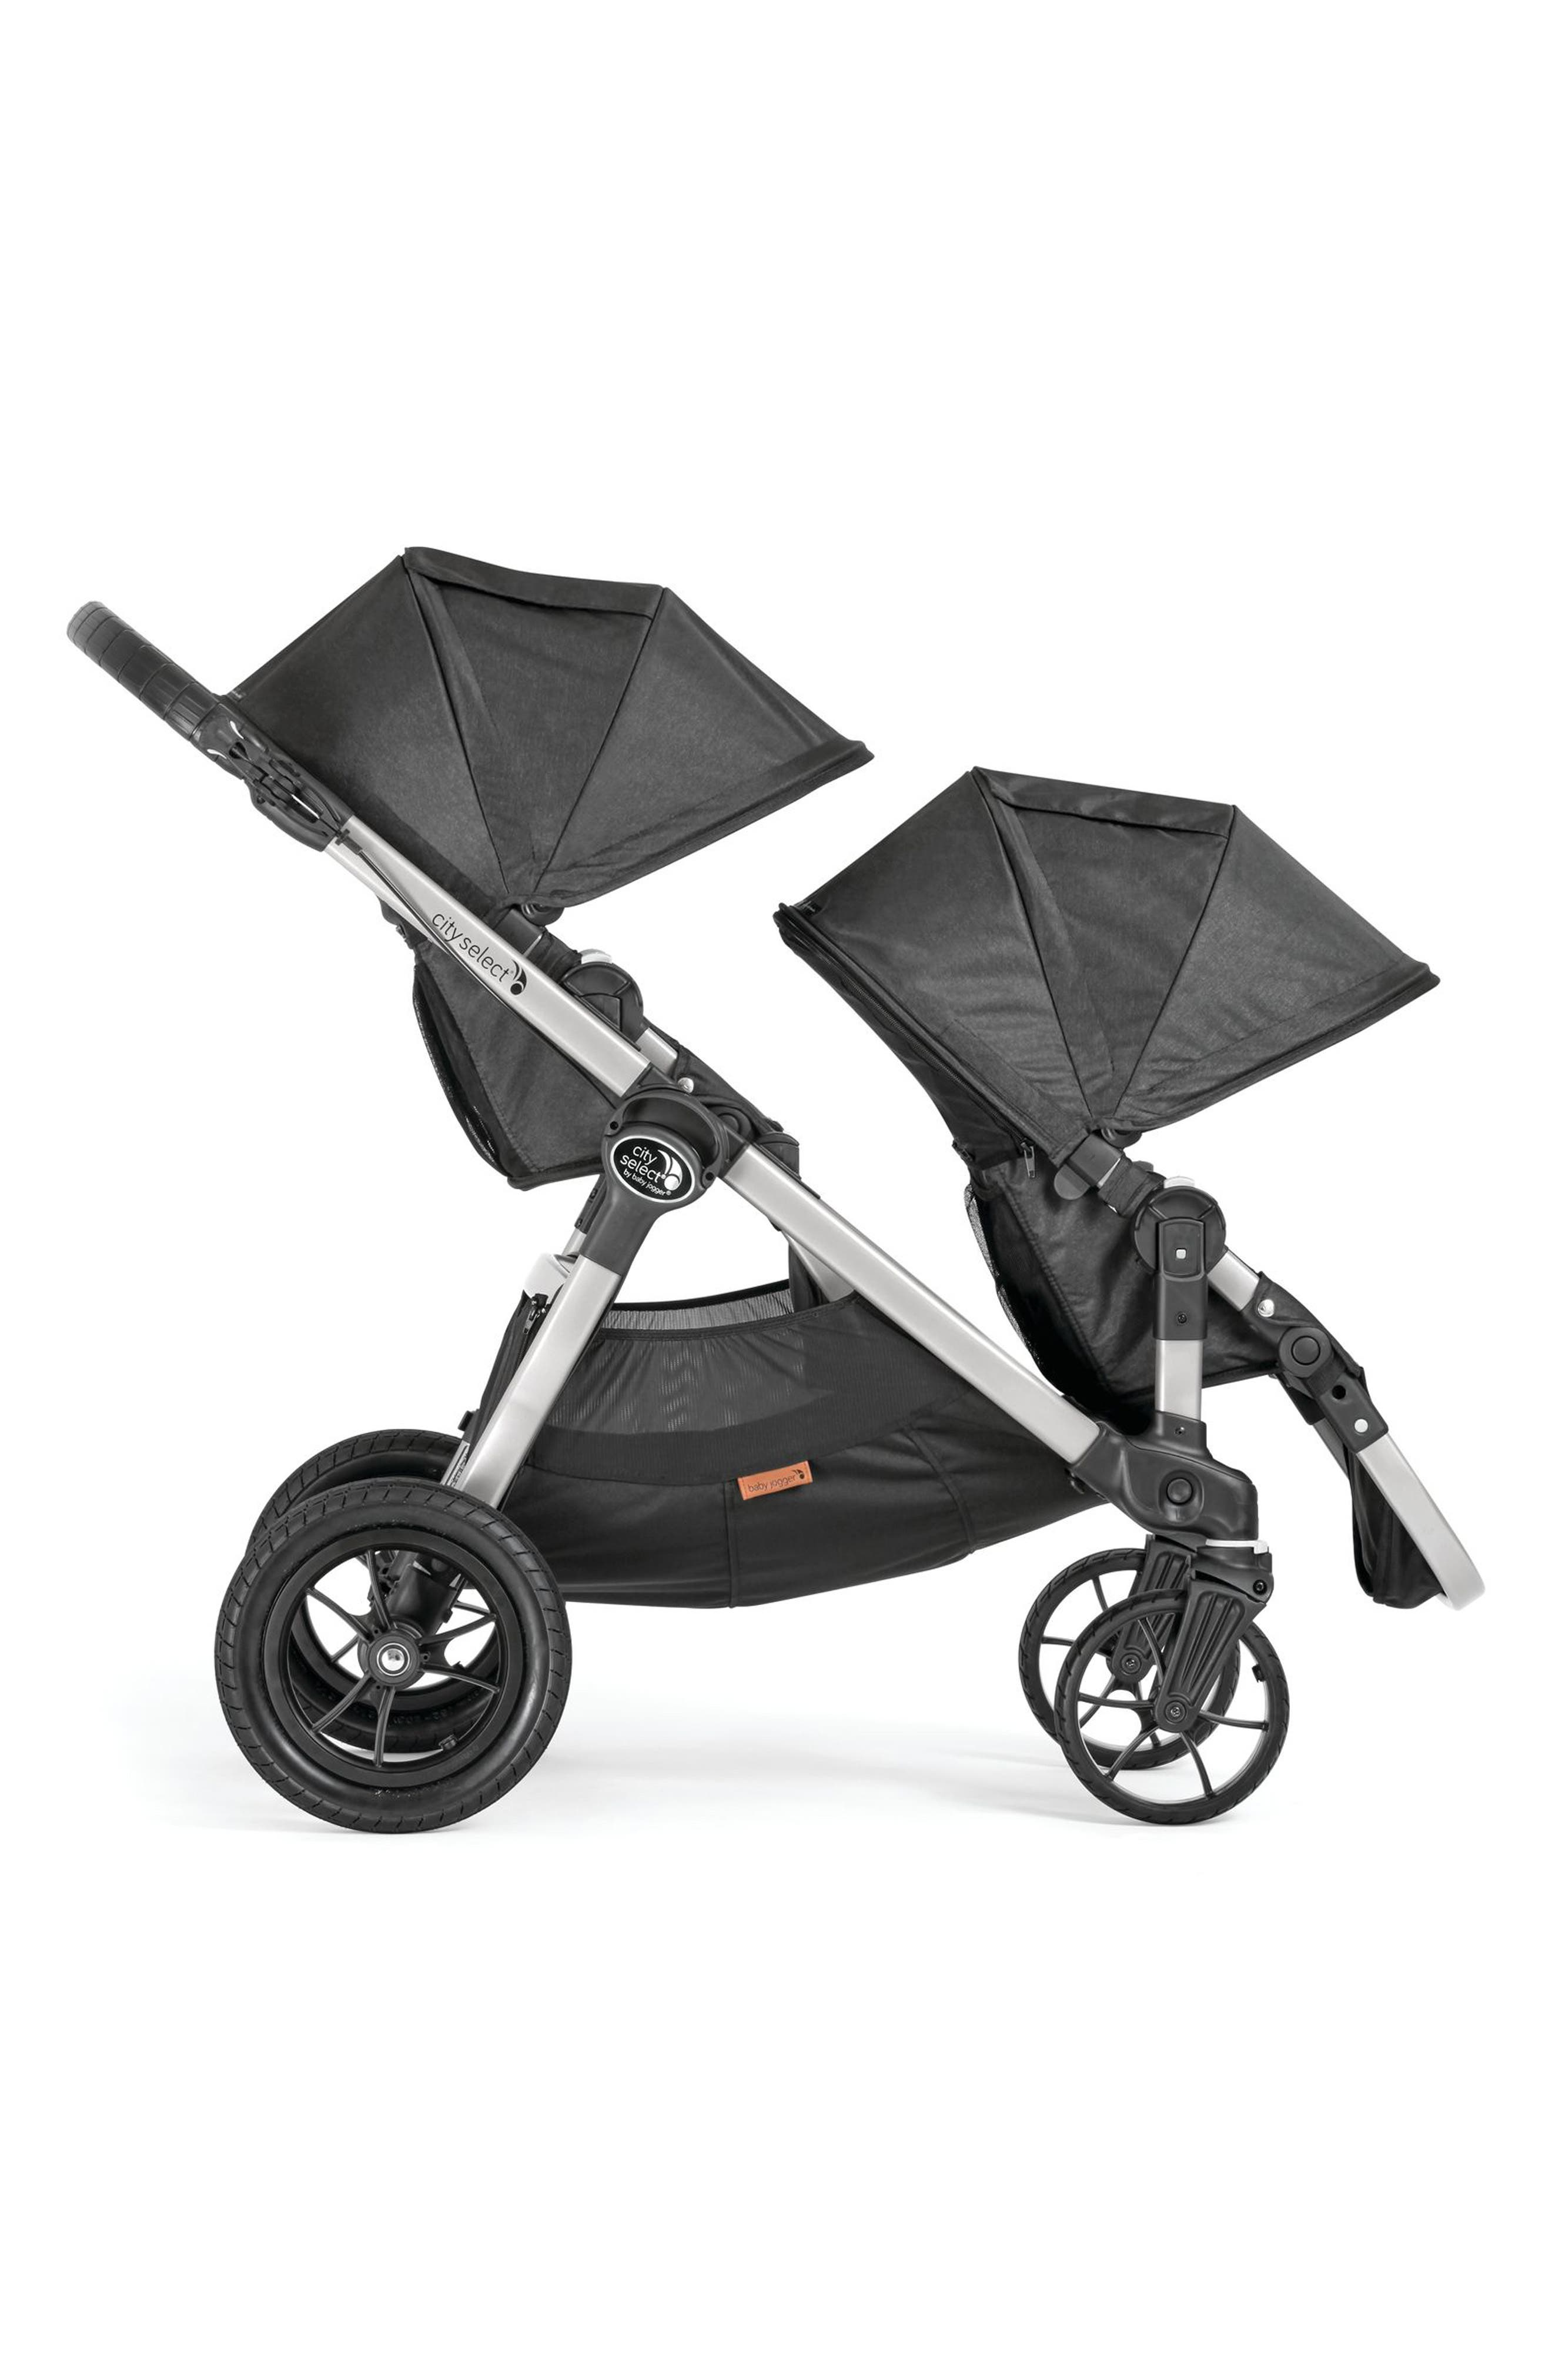 Second Stroller Seat Kit for 2018 City Select<sup>®</sup> Stroller,                             Main thumbnail 1, color,                             020